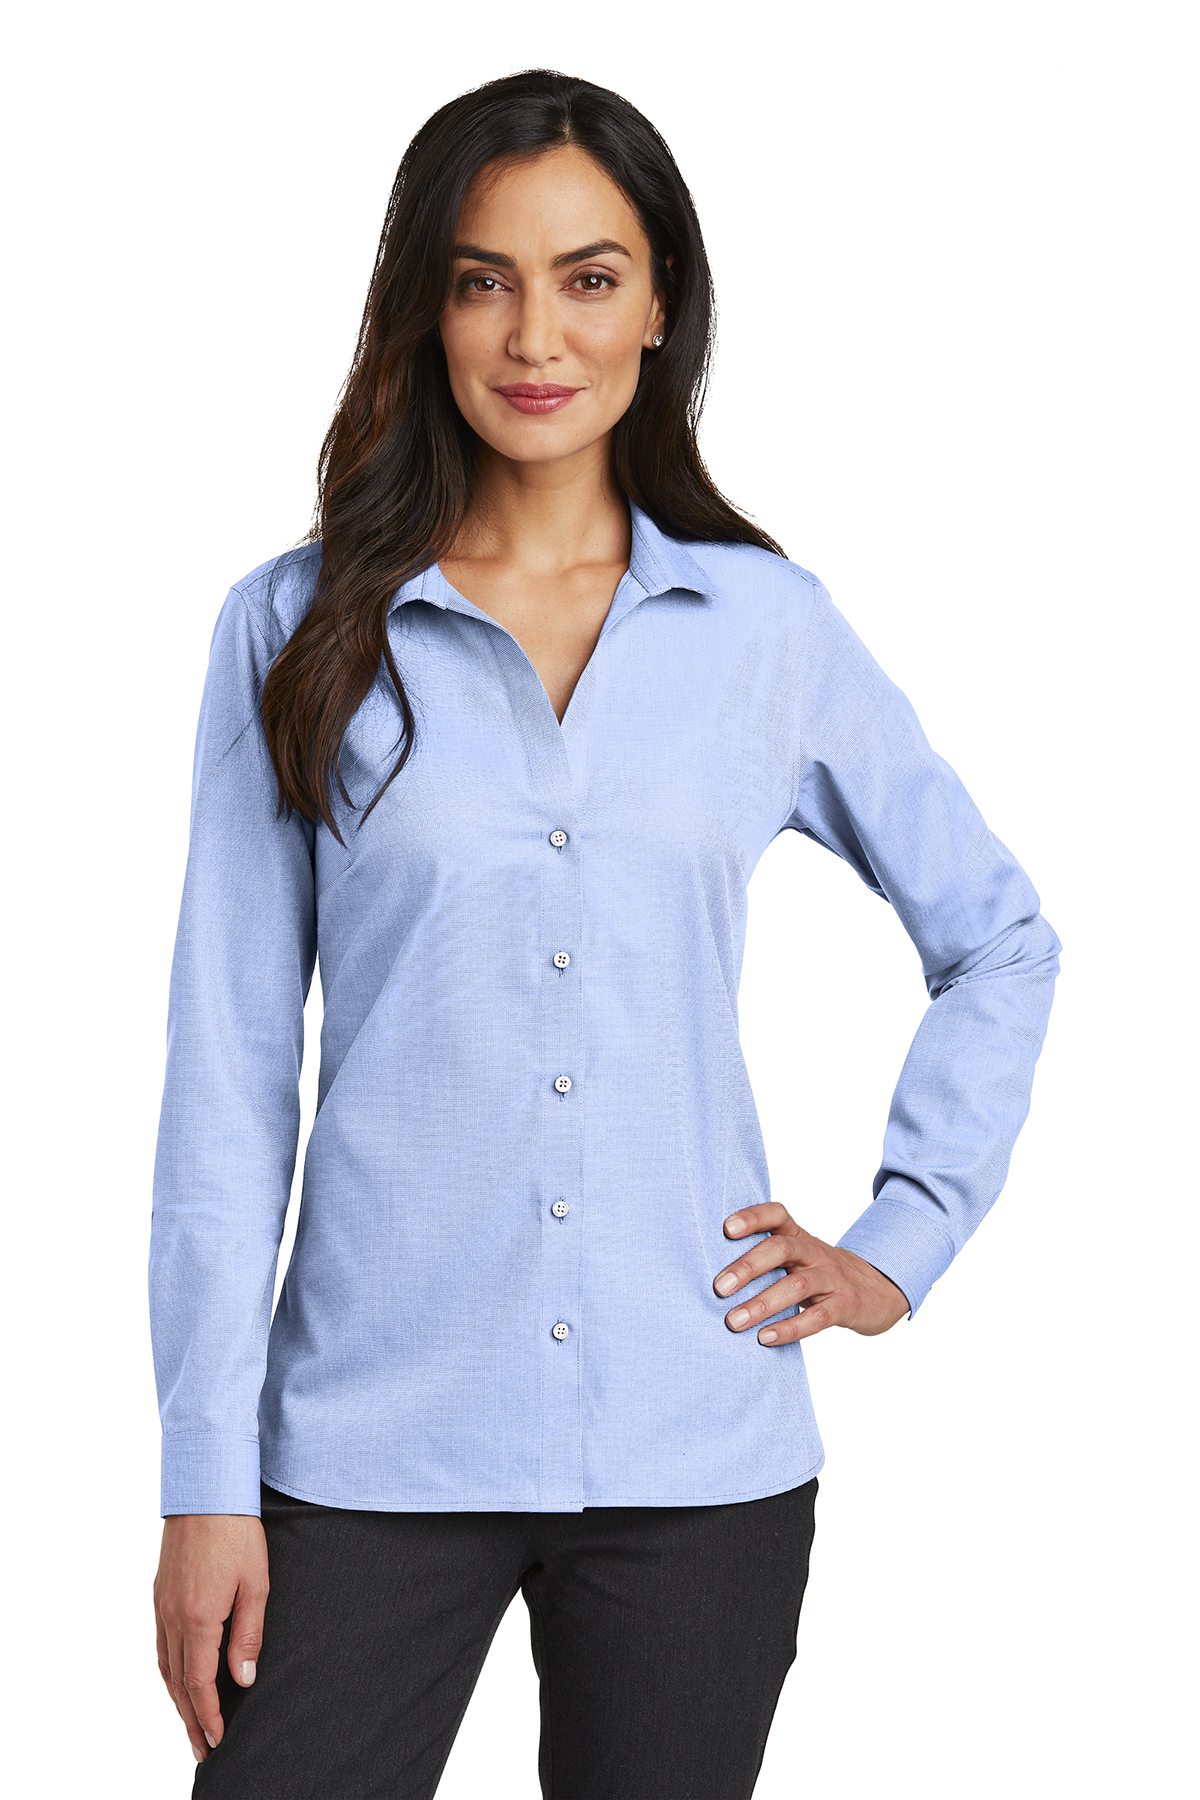 a92b7727110 Red House® Ladies Nailhead Non-Iron Shirt | Woven Shirts | SanMar